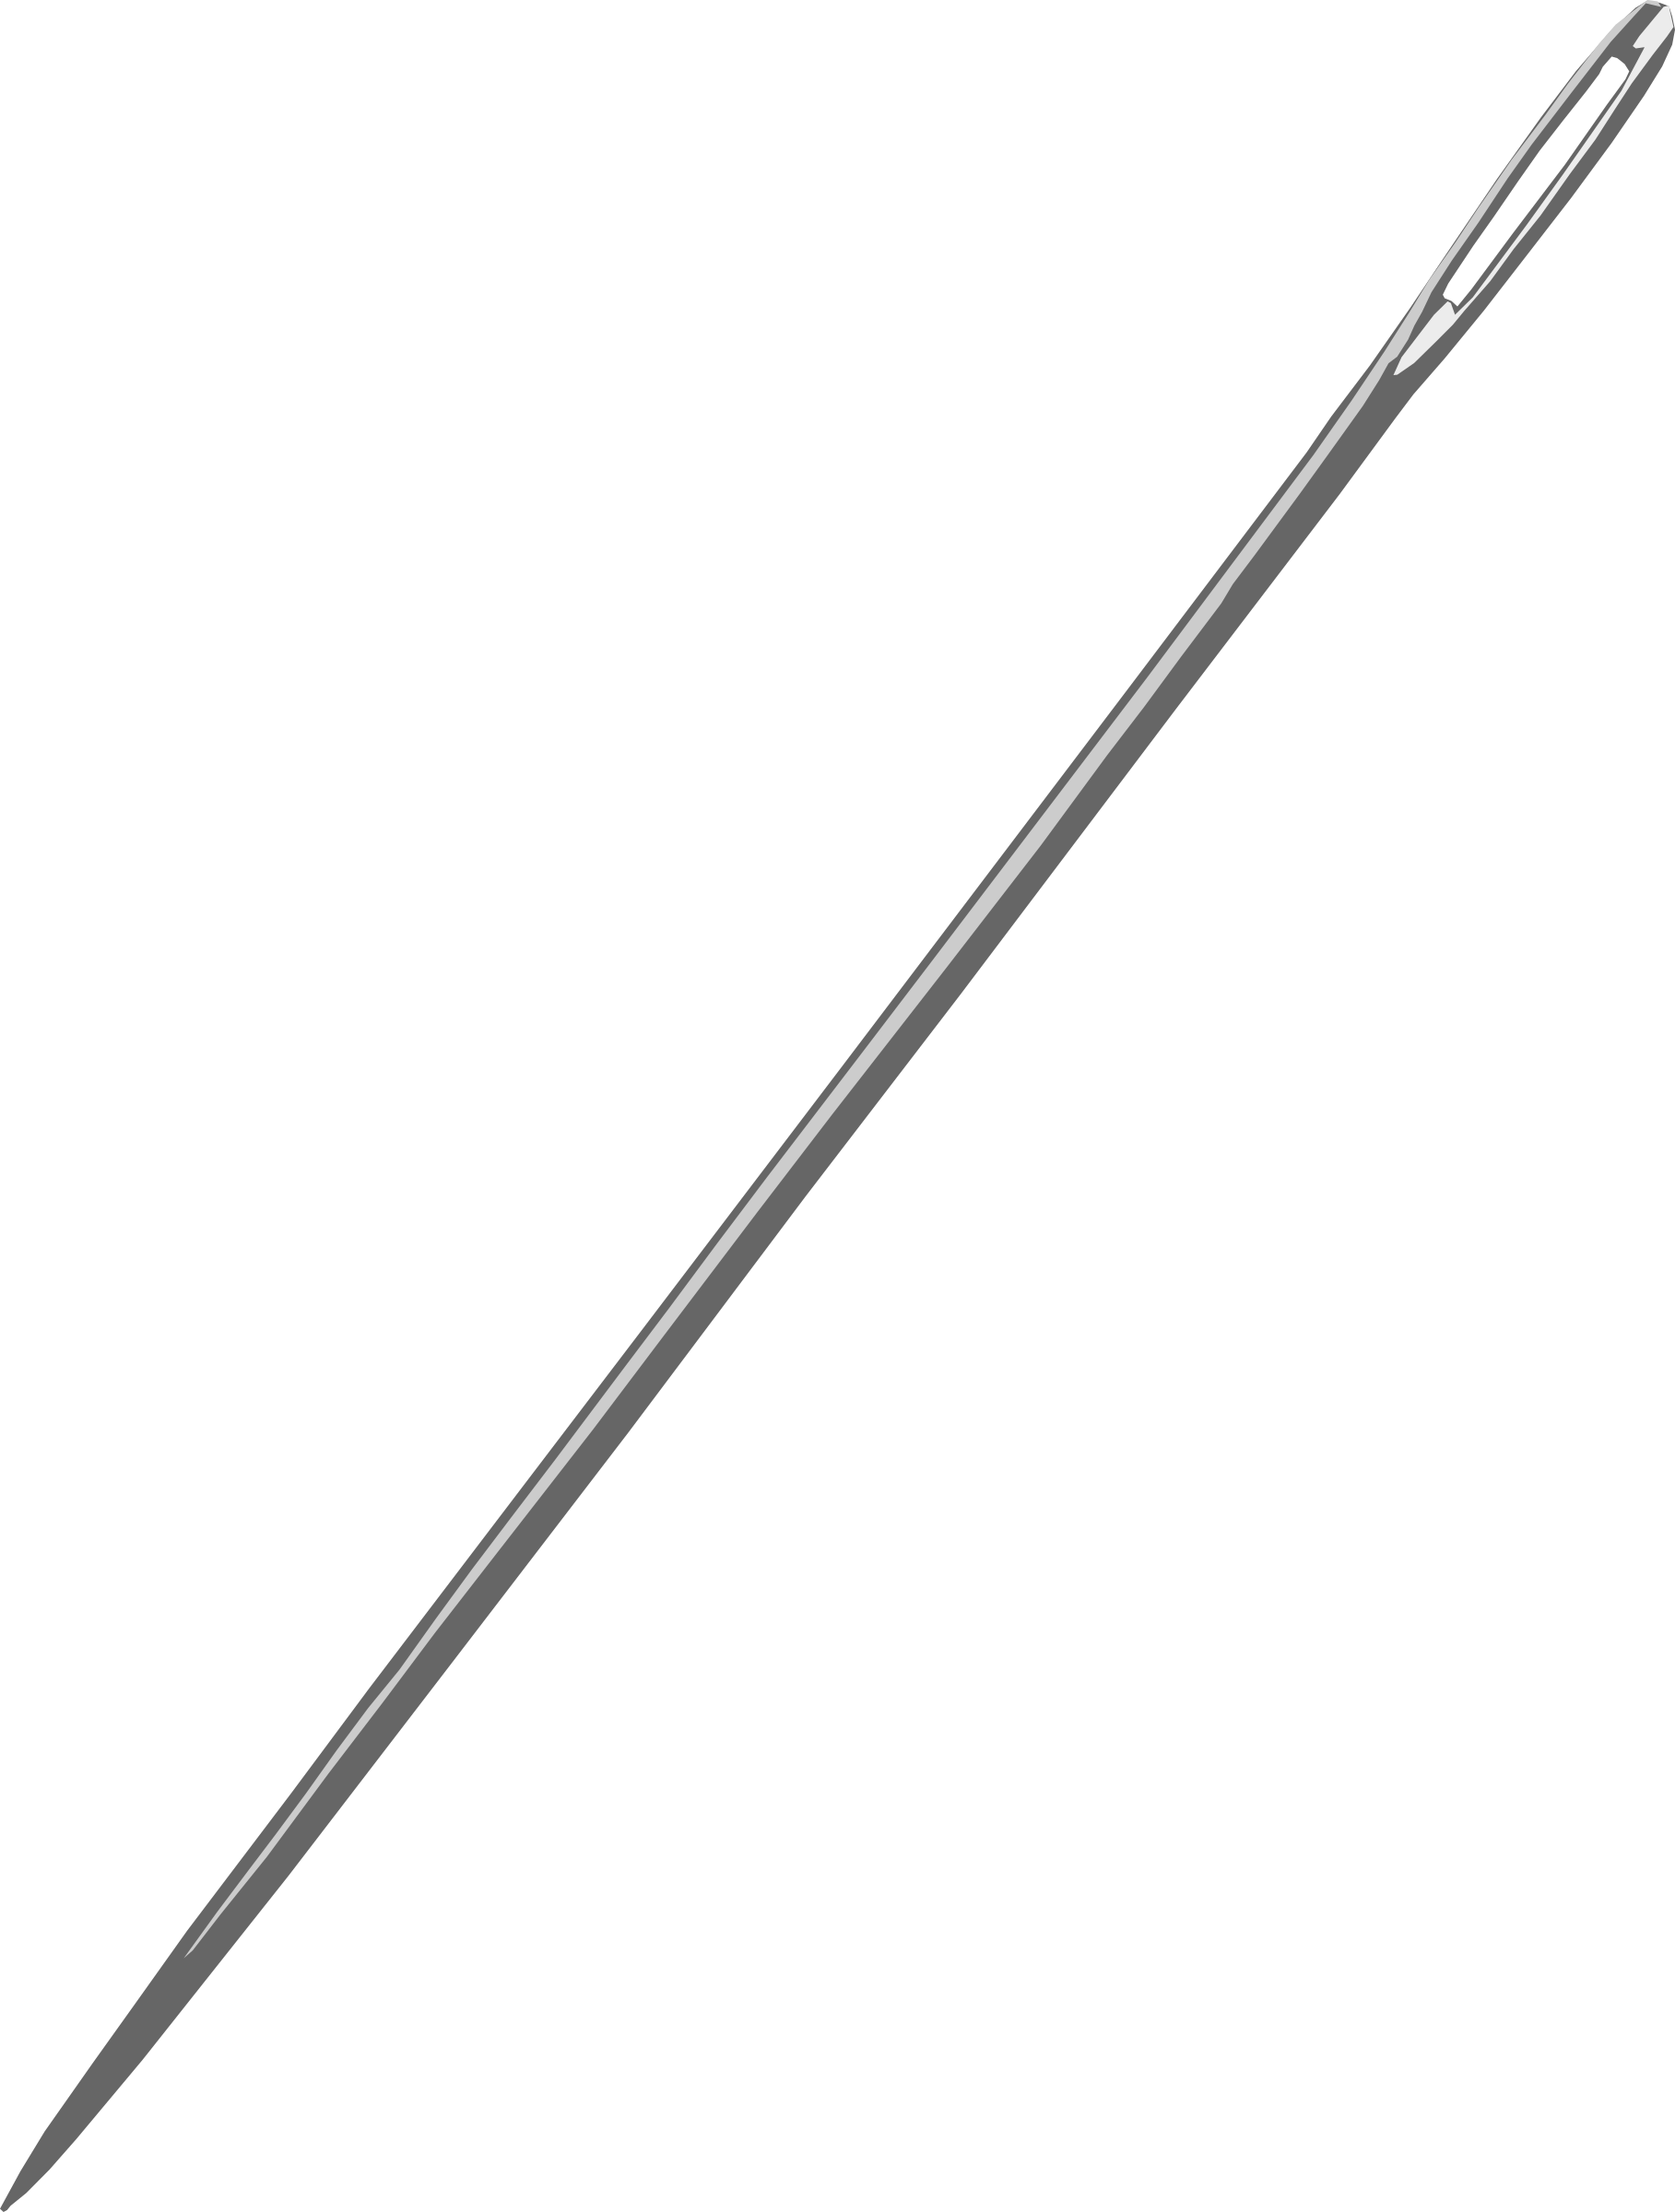 Free png sewing transparent. Needle clipart neddle